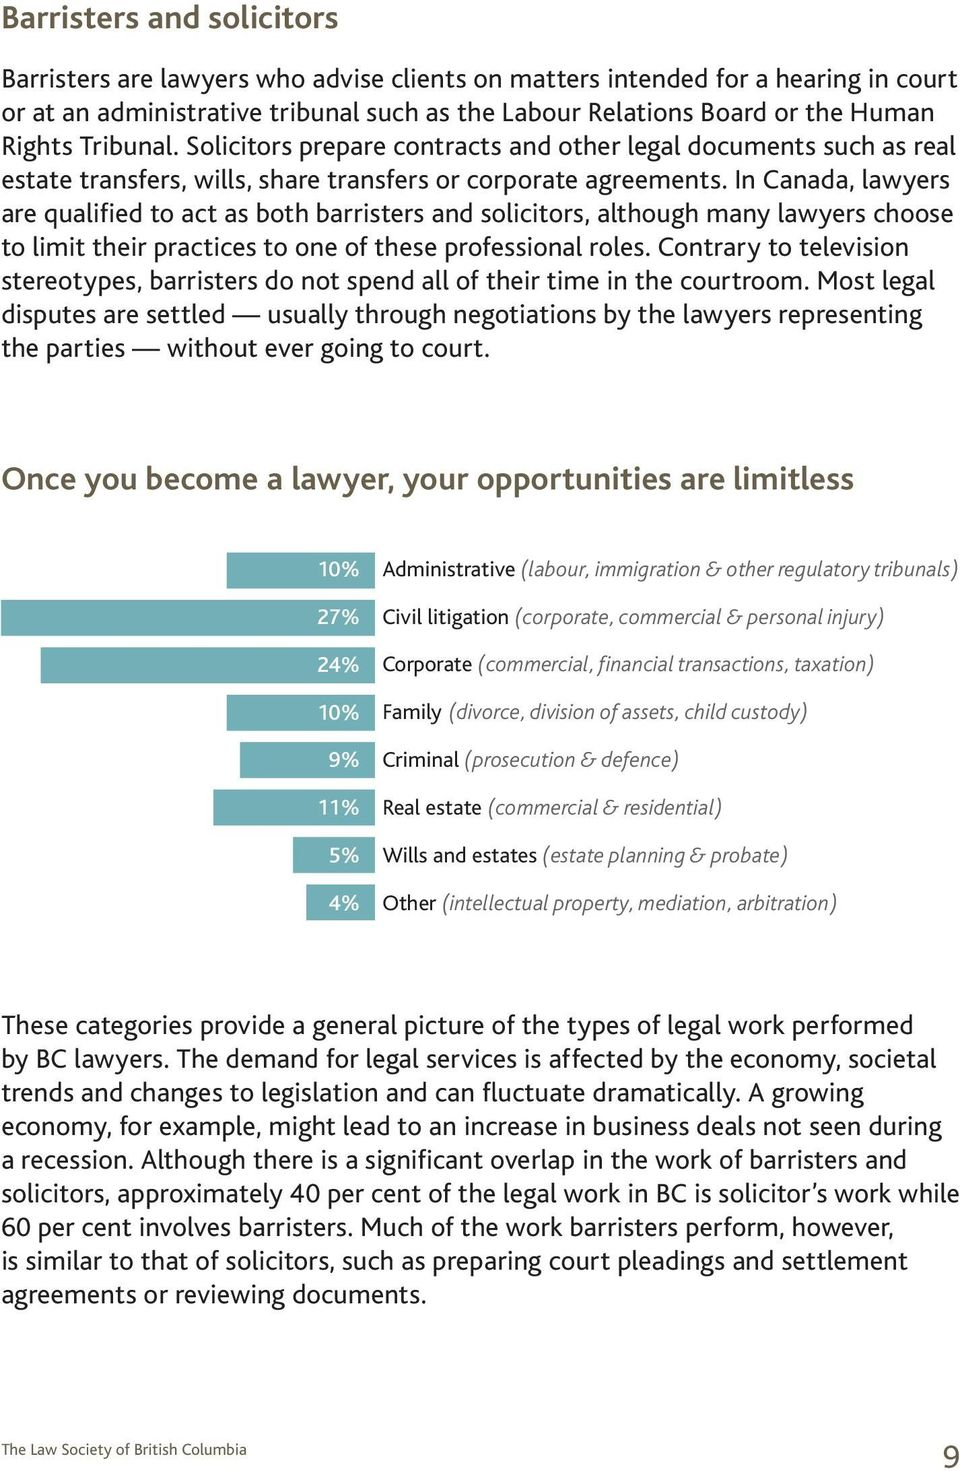 In Canada, lawyers are qualified to act as both barristers and solicitors, although many lawyers choose to limit their practices to one of these professional roles.